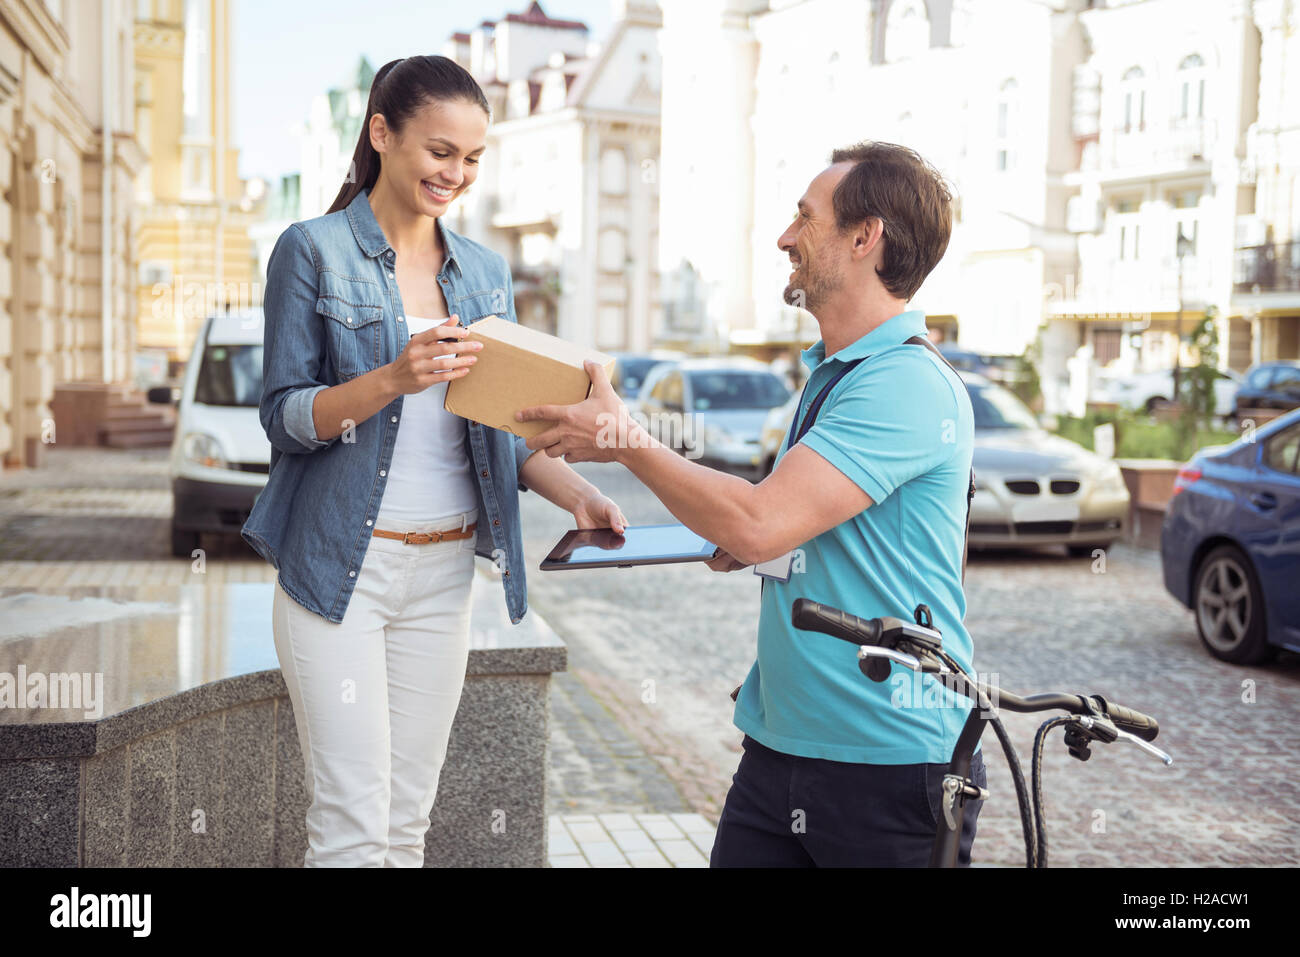 Cheerful courier delivering parcel to the client. - Stock Image